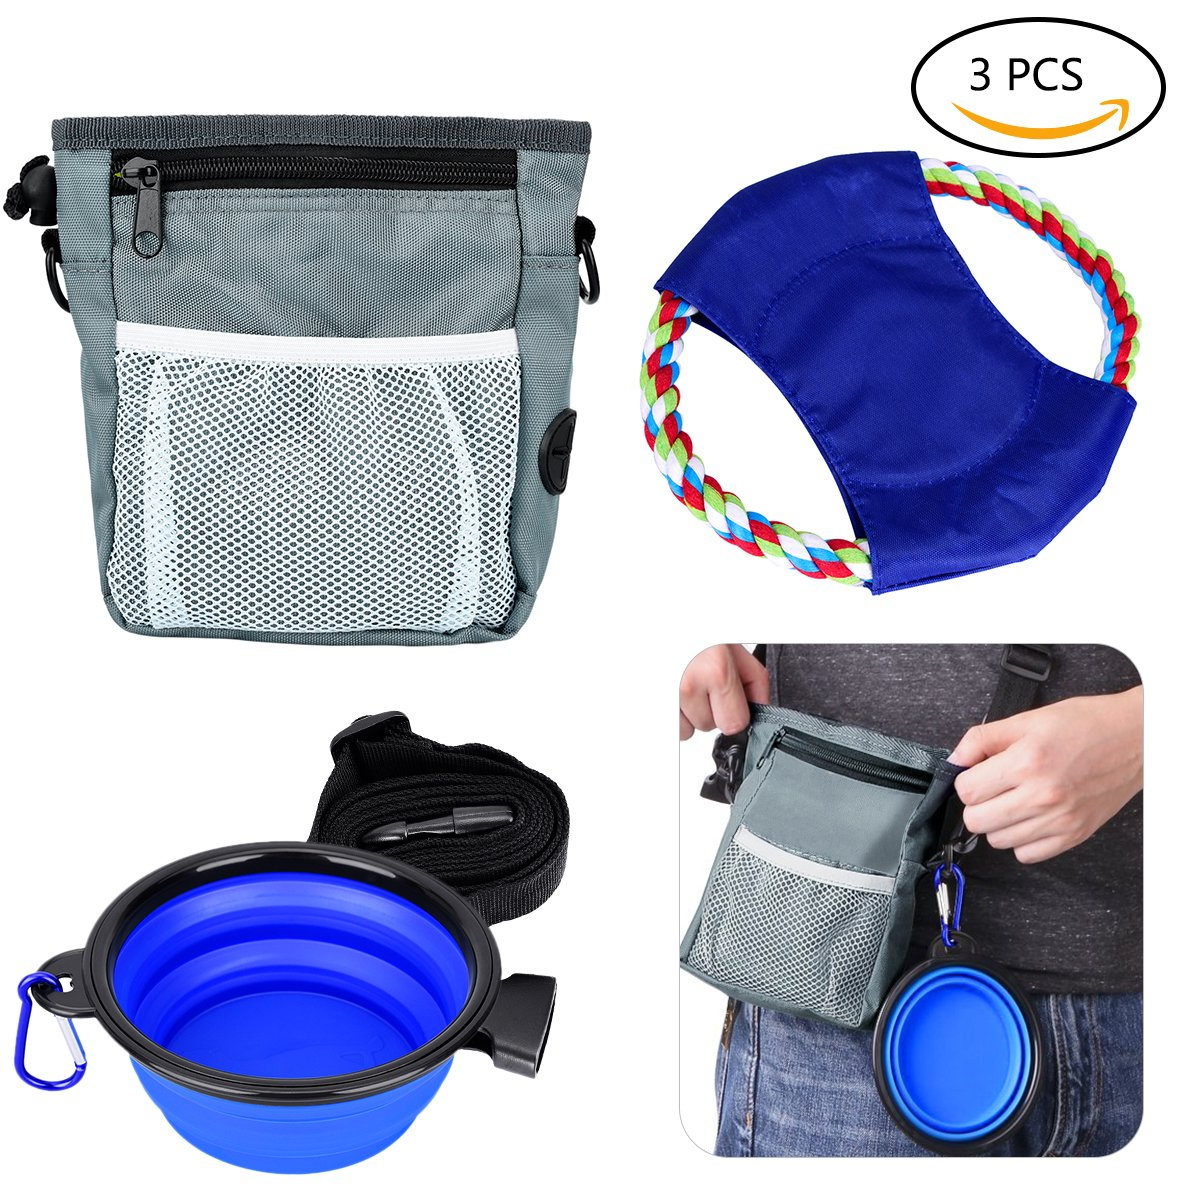 TinTop Dog Training Treat Tool Set including 1 Pouch Bag with Adjustable Strap 1 Silicone Foldable Travel Bowl with Clip 1Frisbee for Pet Dog Cat Indoor Outdoor Feeding and Training Gray + Blue